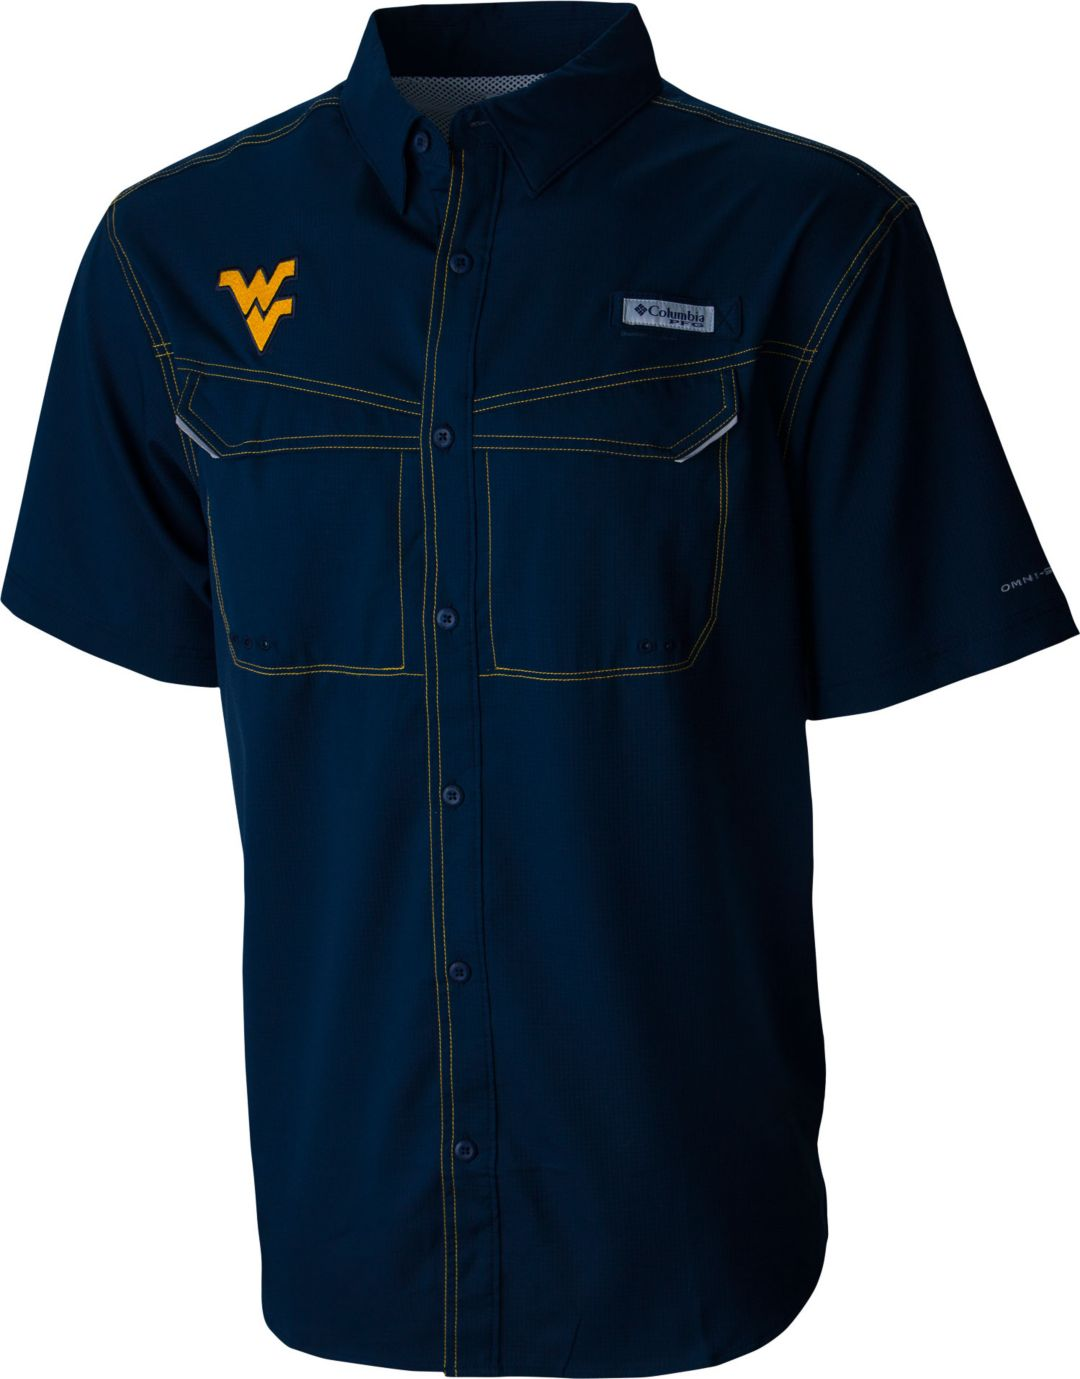 b5e862600dd Columbia Men's West Virginia Mountaineers Blue Low Drag Offshore  Performance Shirt 1